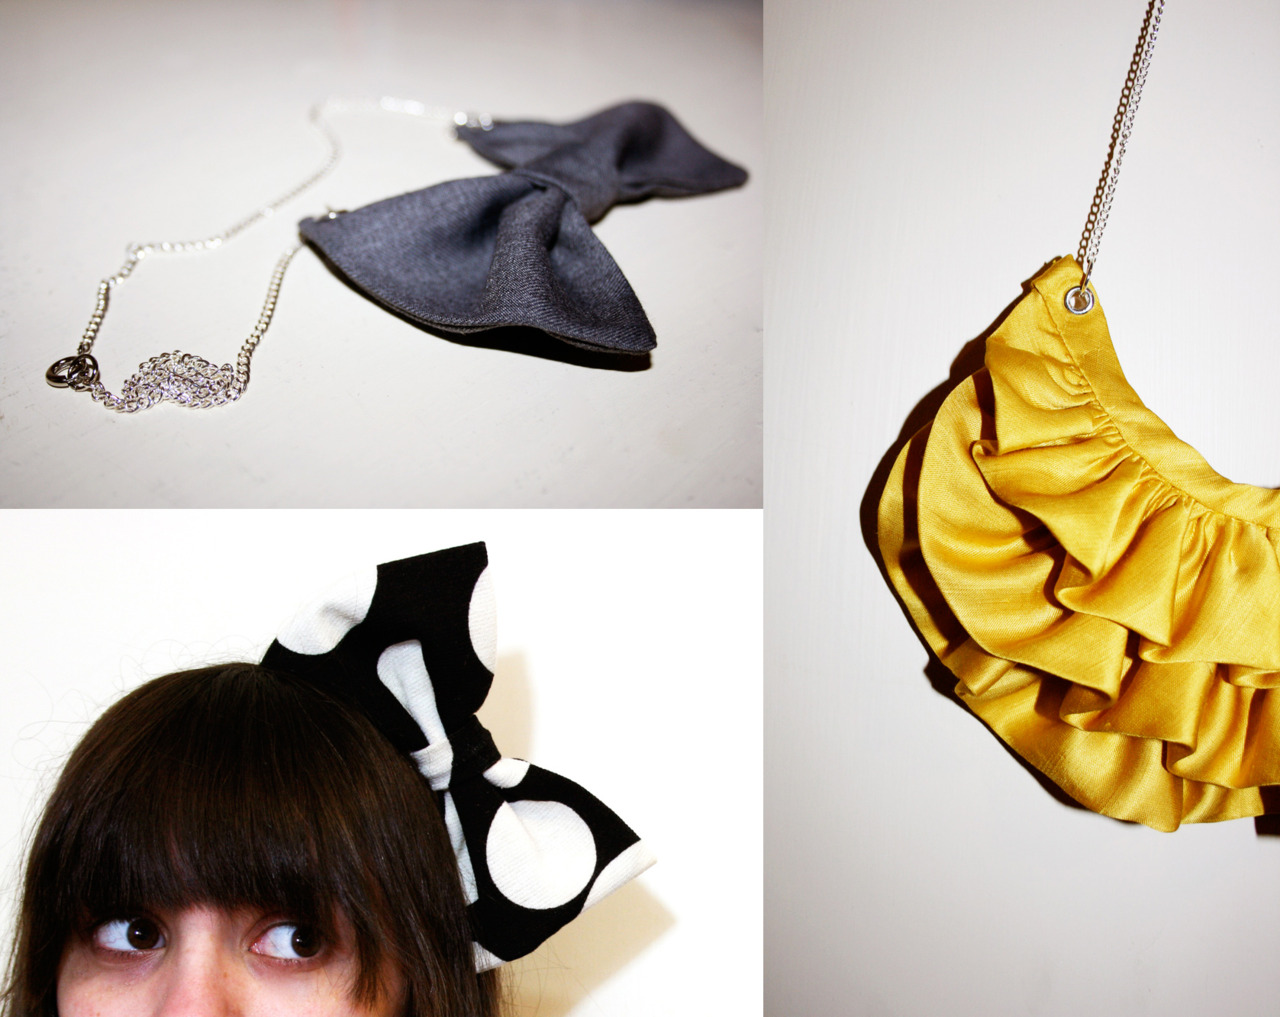 Some new additions to the shop. Ruffles and bows and cuteness, oh my!